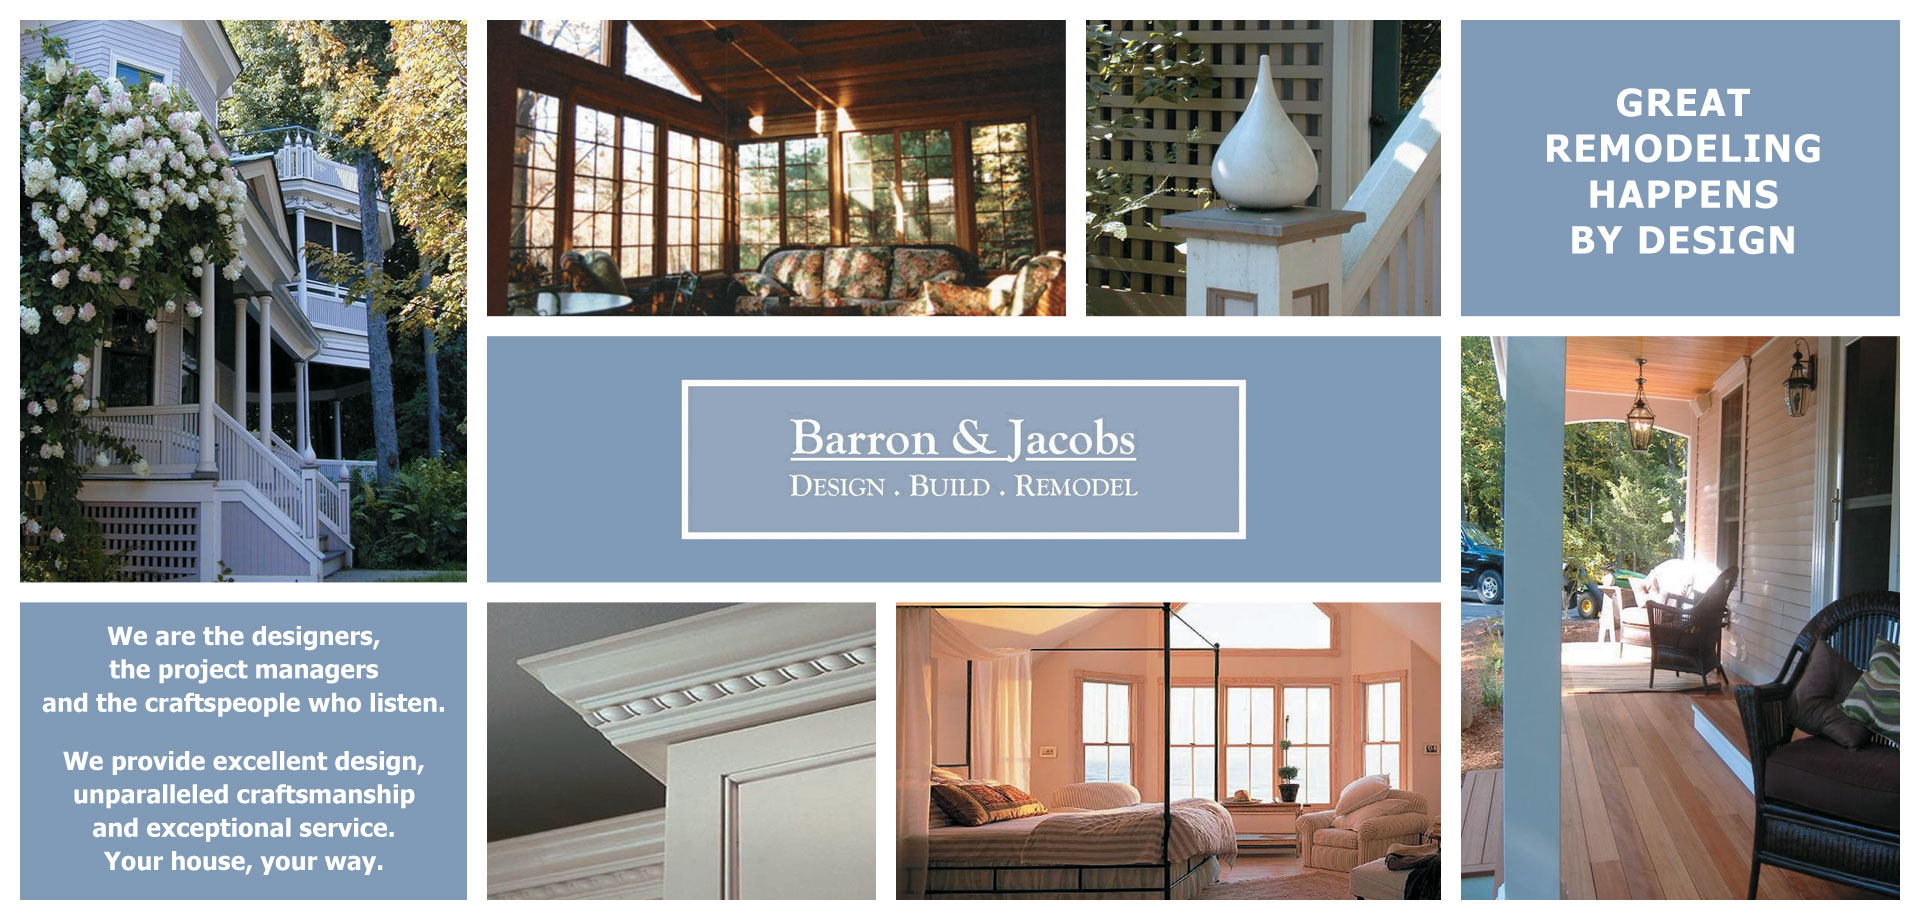 Home Remodeling in Western Massachusetts - Barron & Jacobs